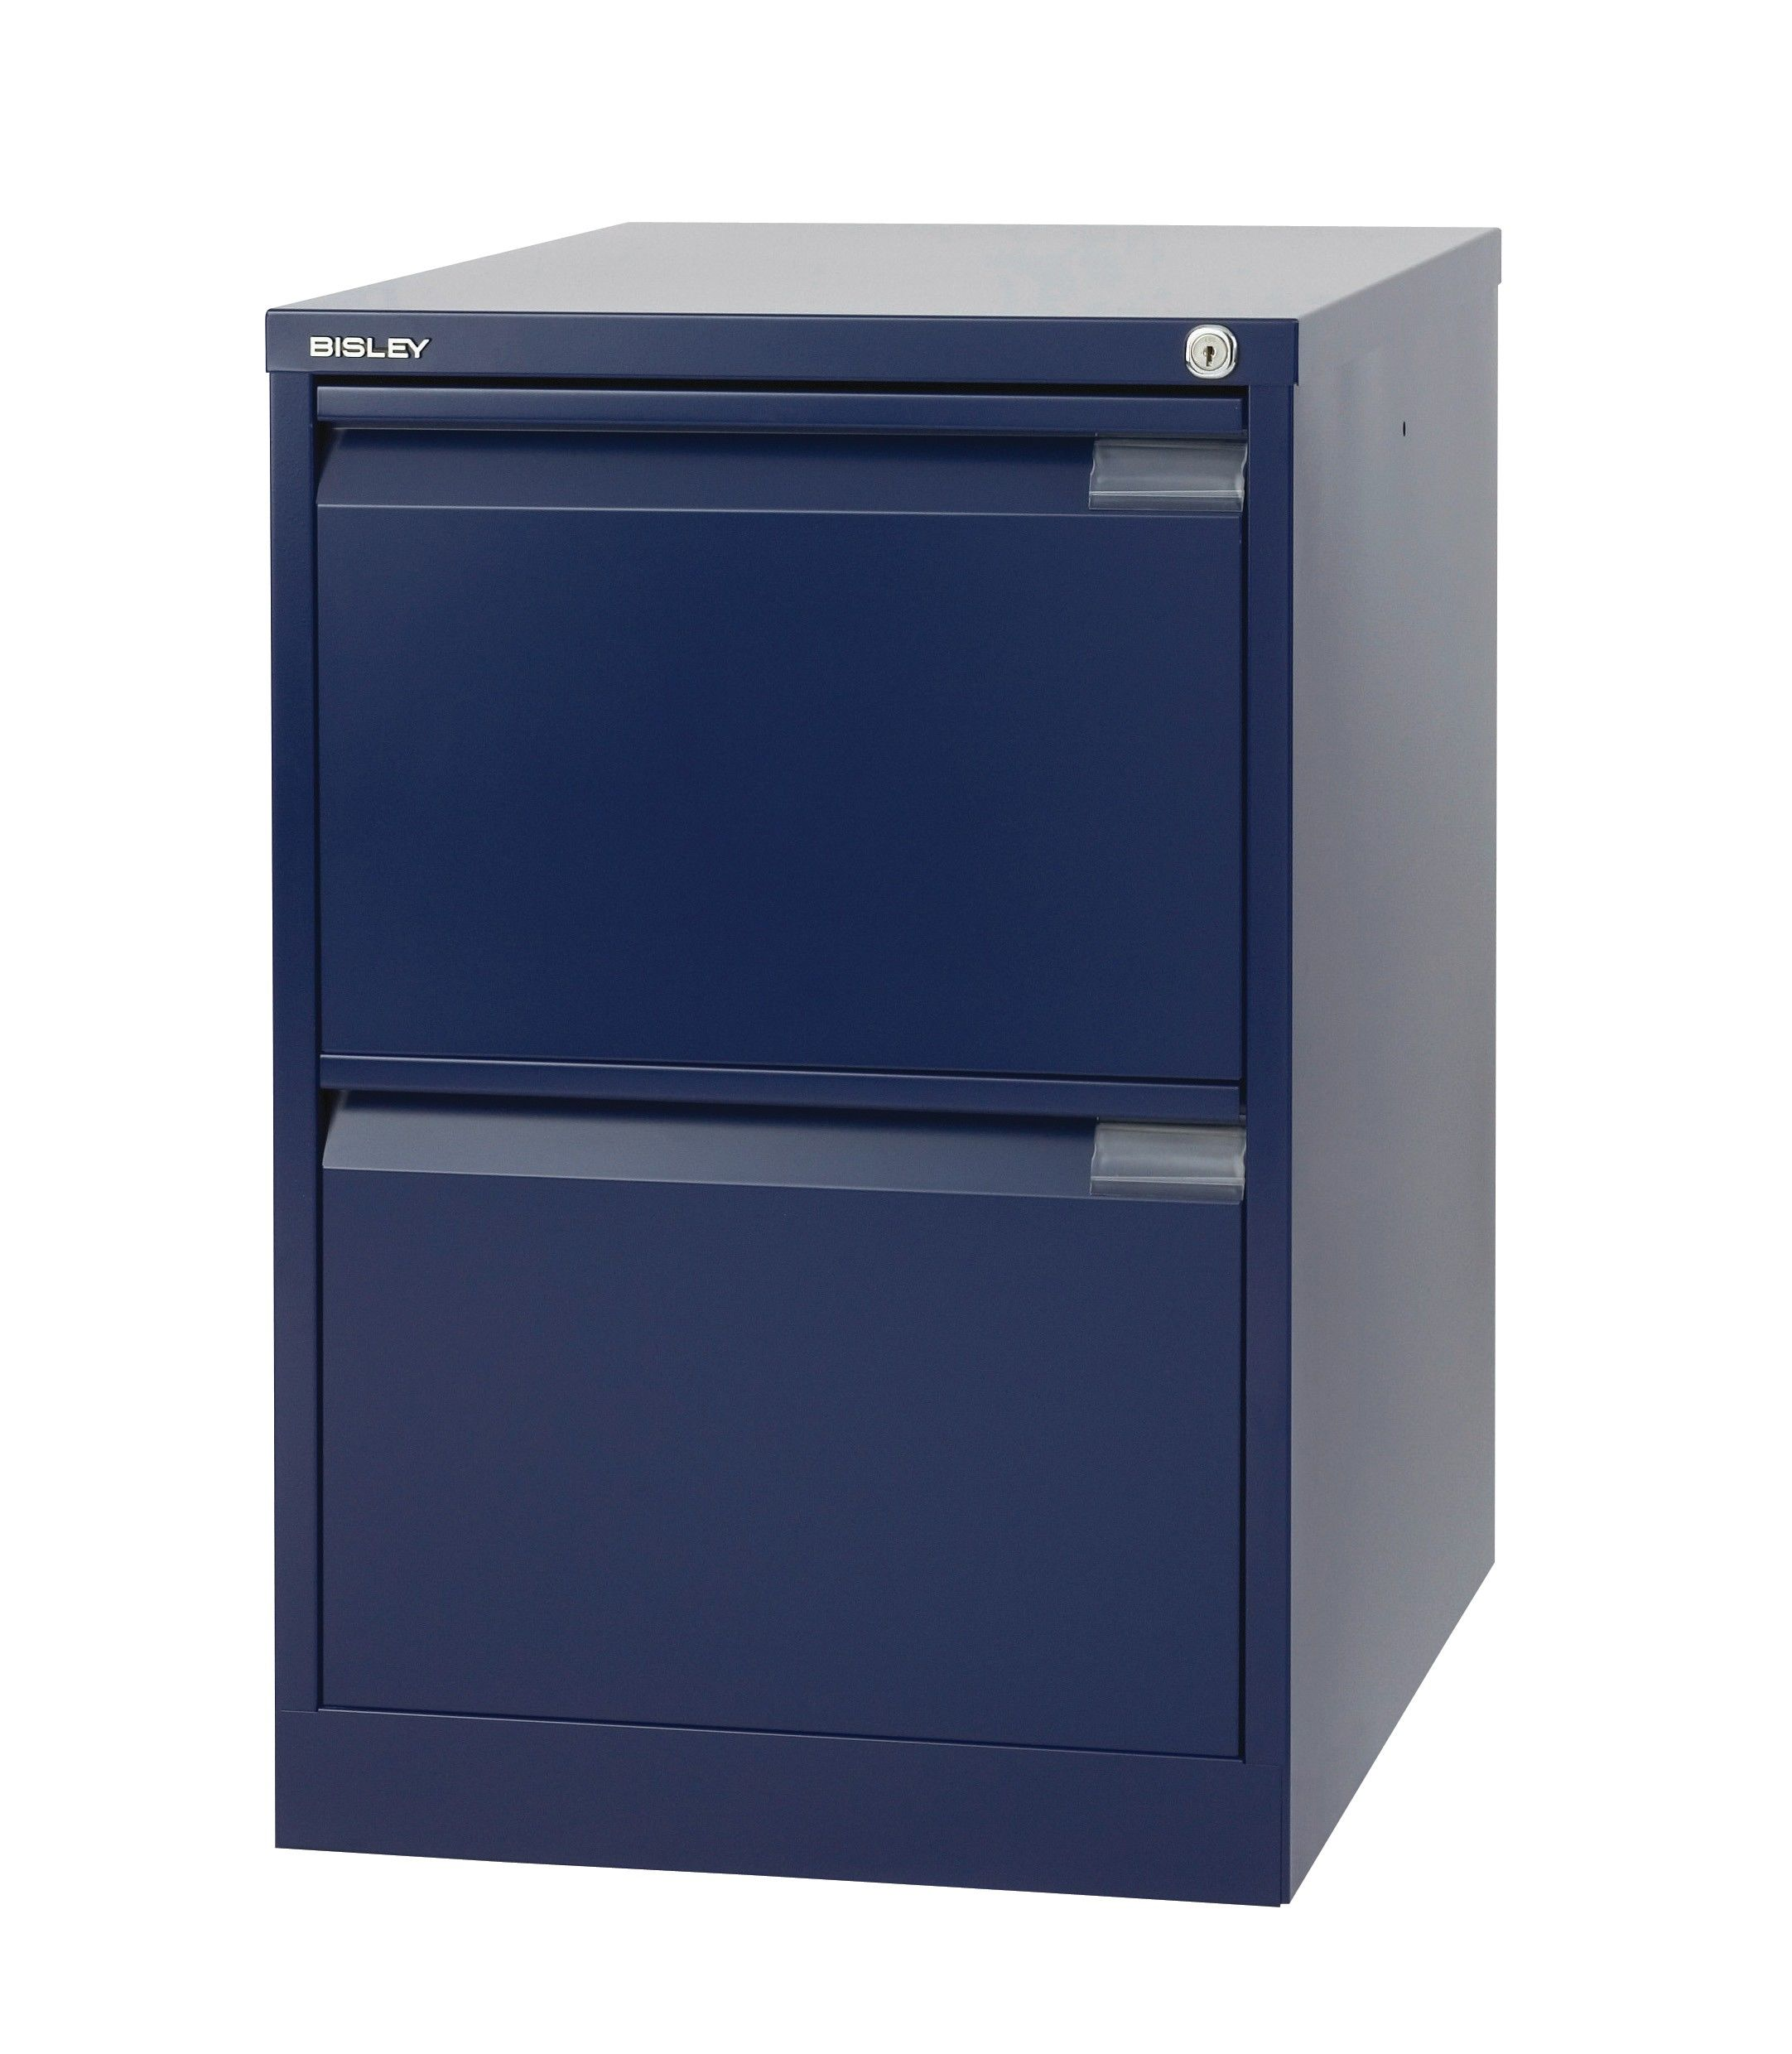 9 Drawer Filing Cabinet | Bisley File Cabinet | Desk with File Cabinet Drawer